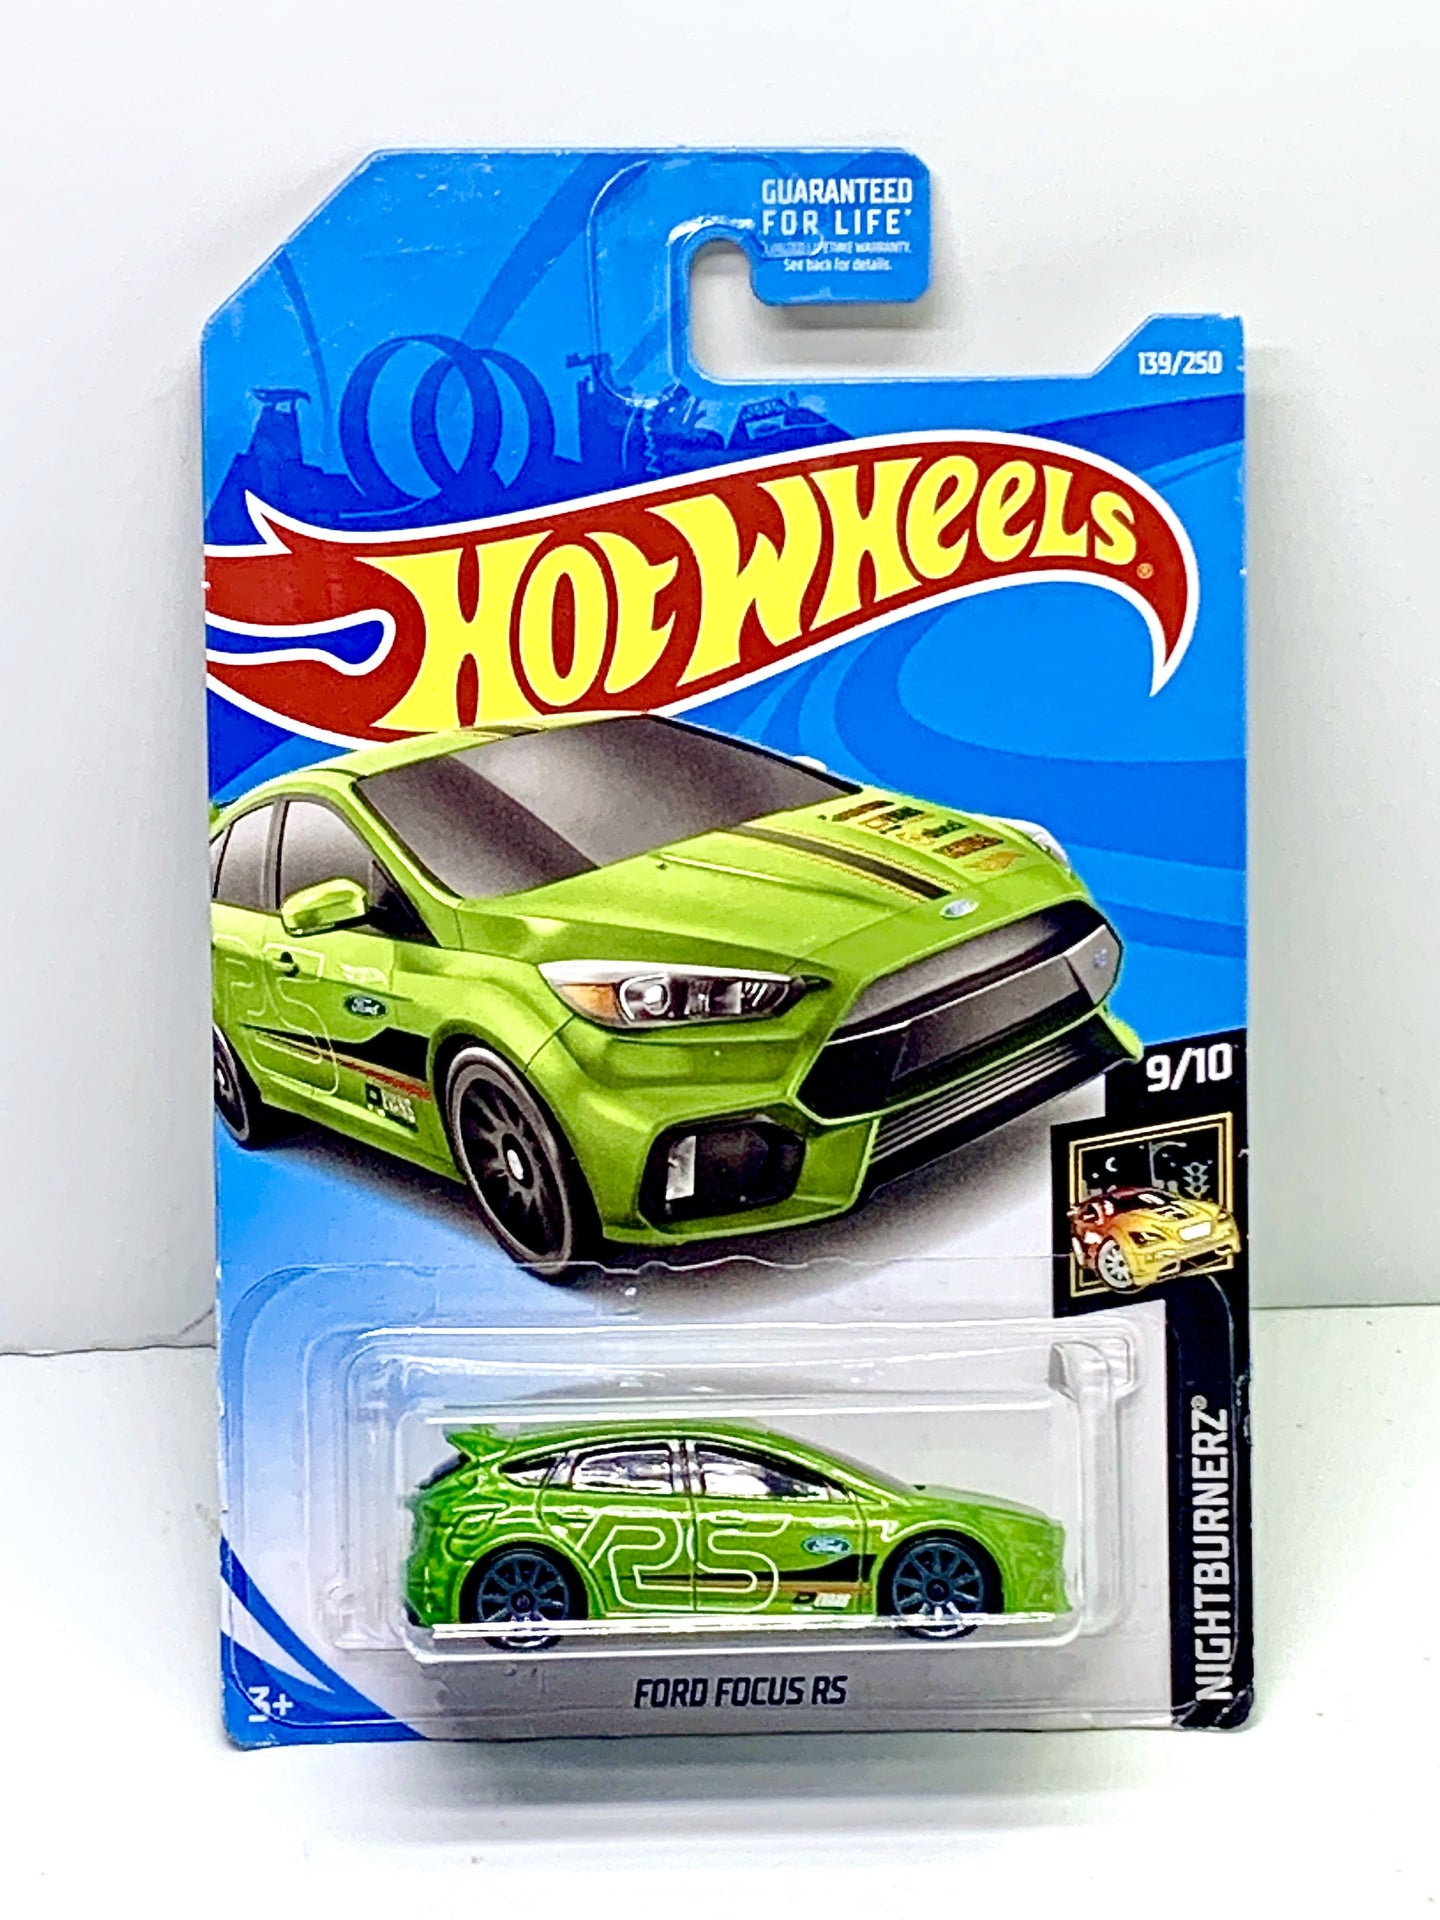 Hot wheels Ford Focus RS - Gonzo's Garage